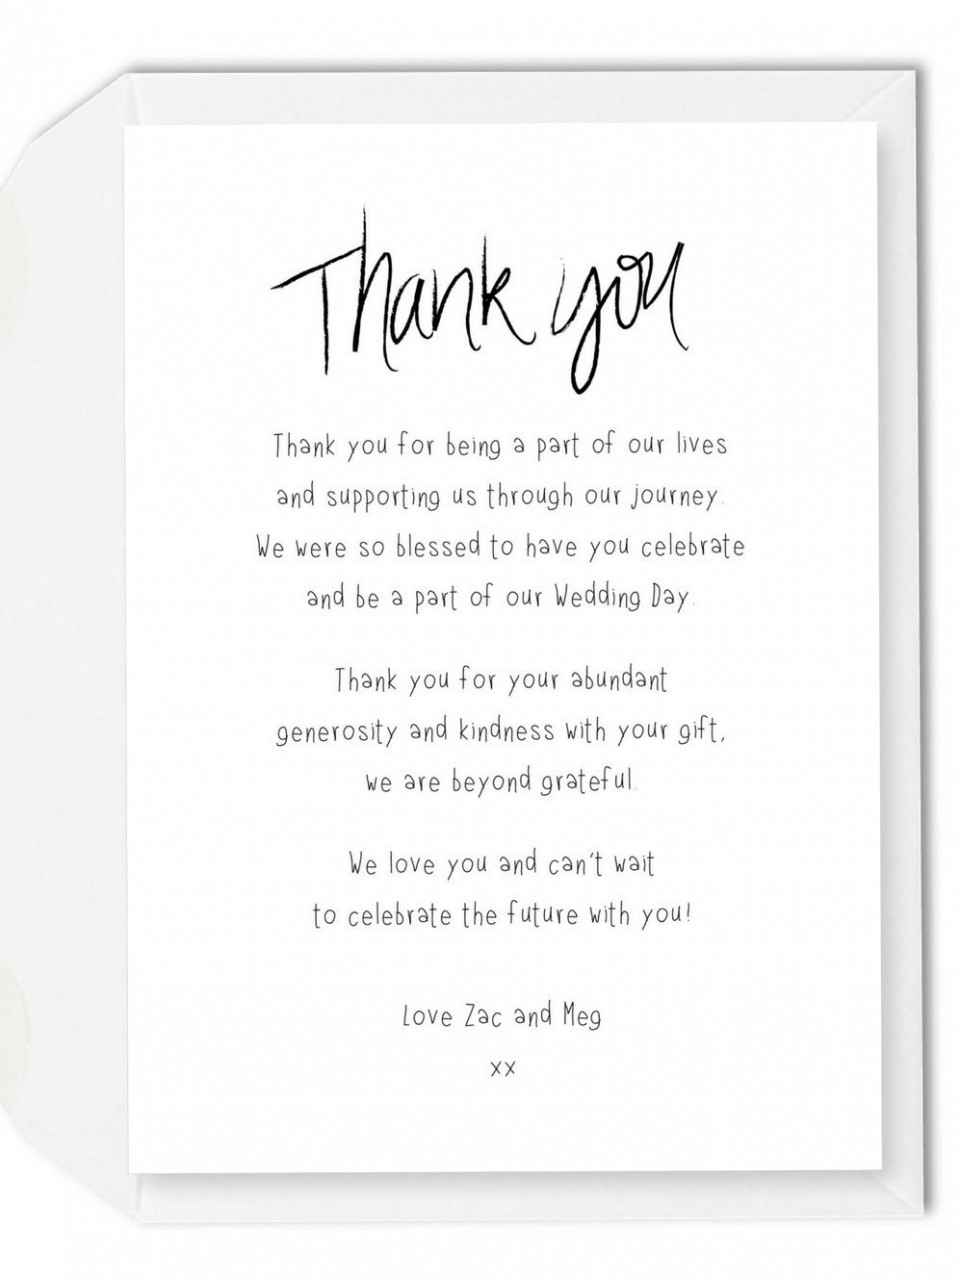 002 Imposing Wedding Thank You Note Template Picture  Bridal Shower Format Money960